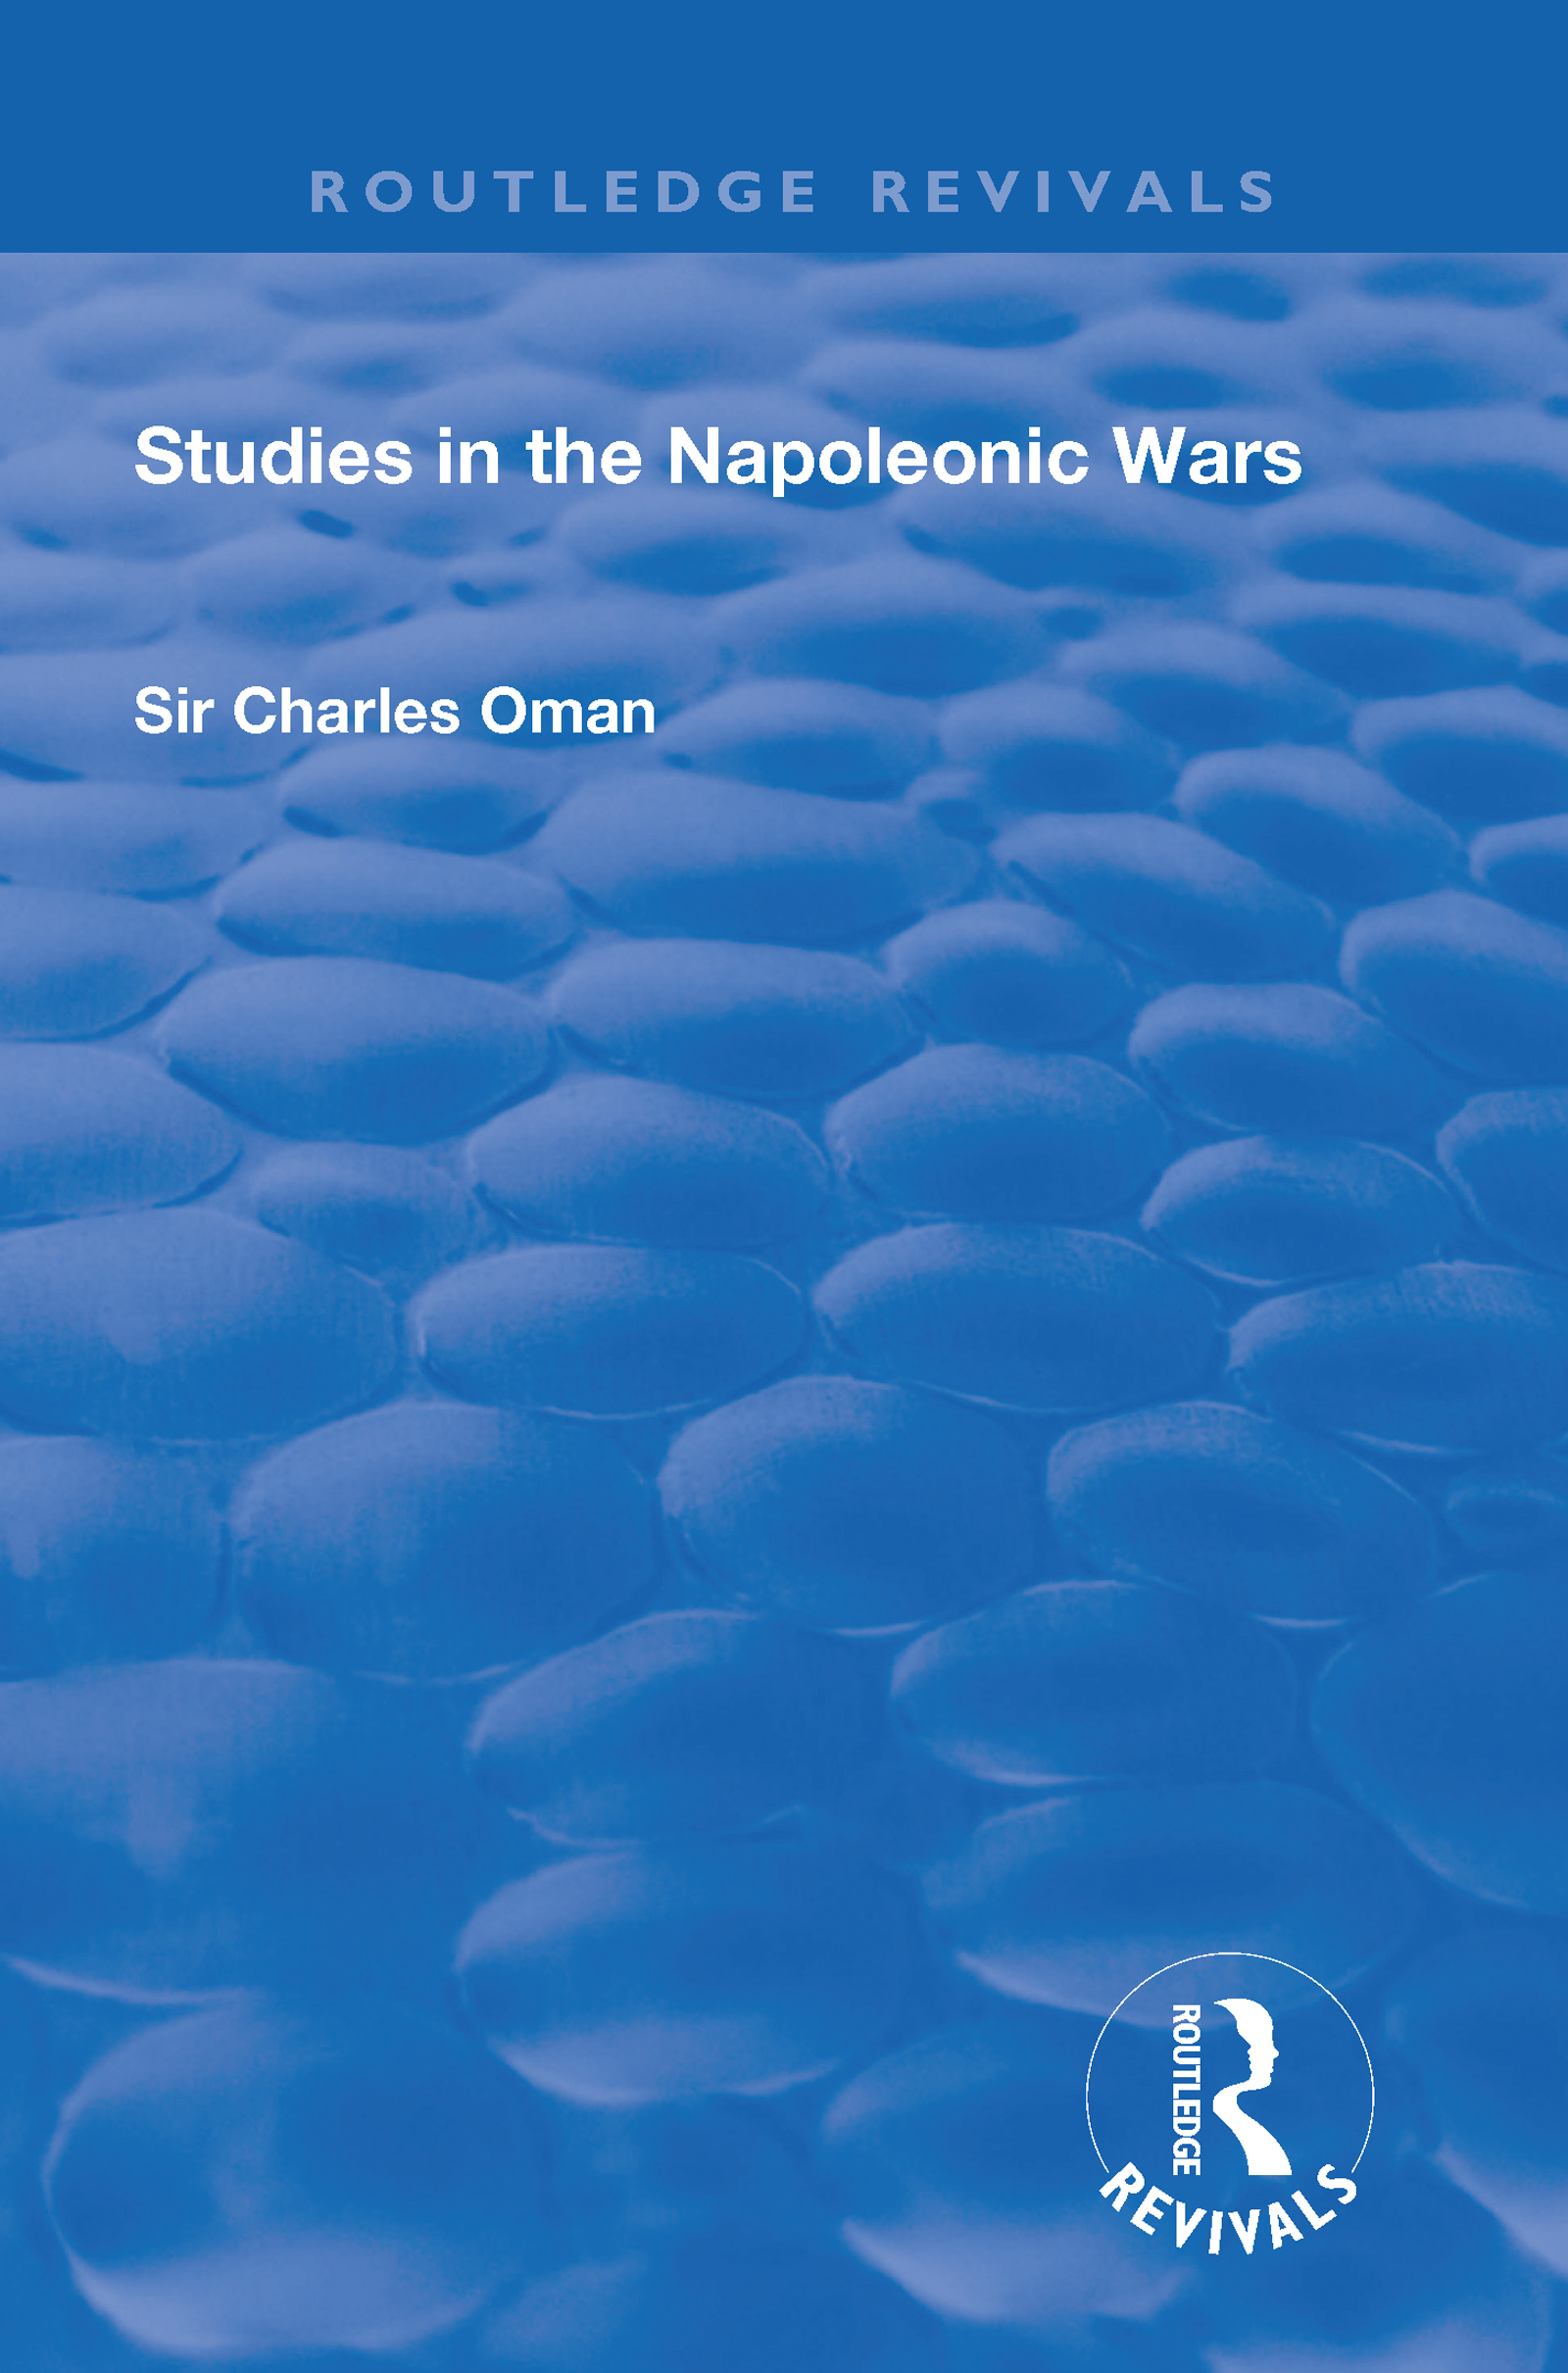 Revival: Studies in the Napoleonic Wars (1929)